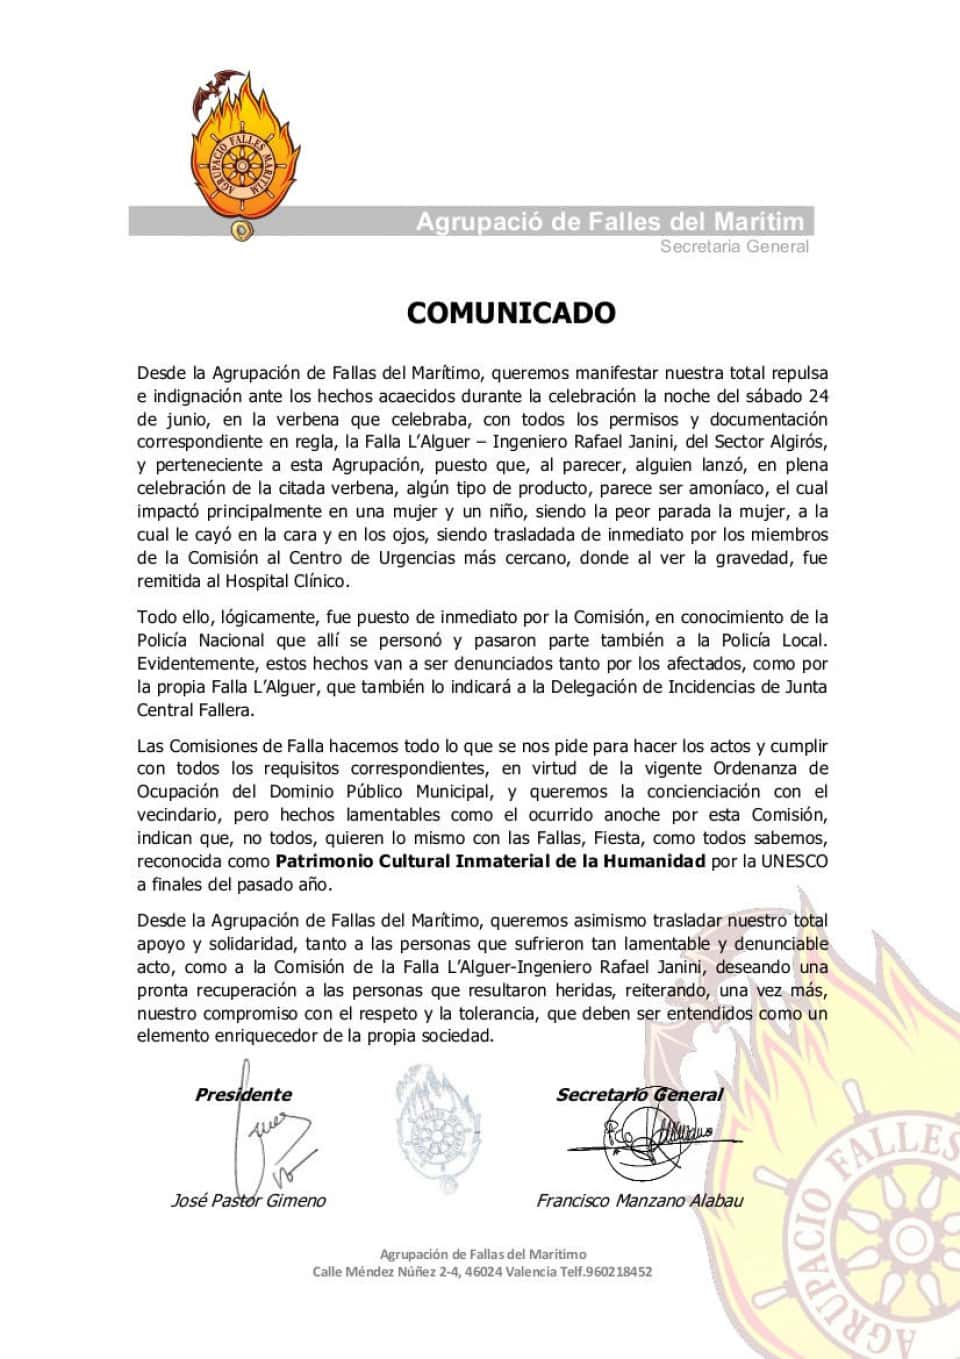 Press note of the Grouping of Fallas of the Maritime incidents in the Falla L'alguer 1